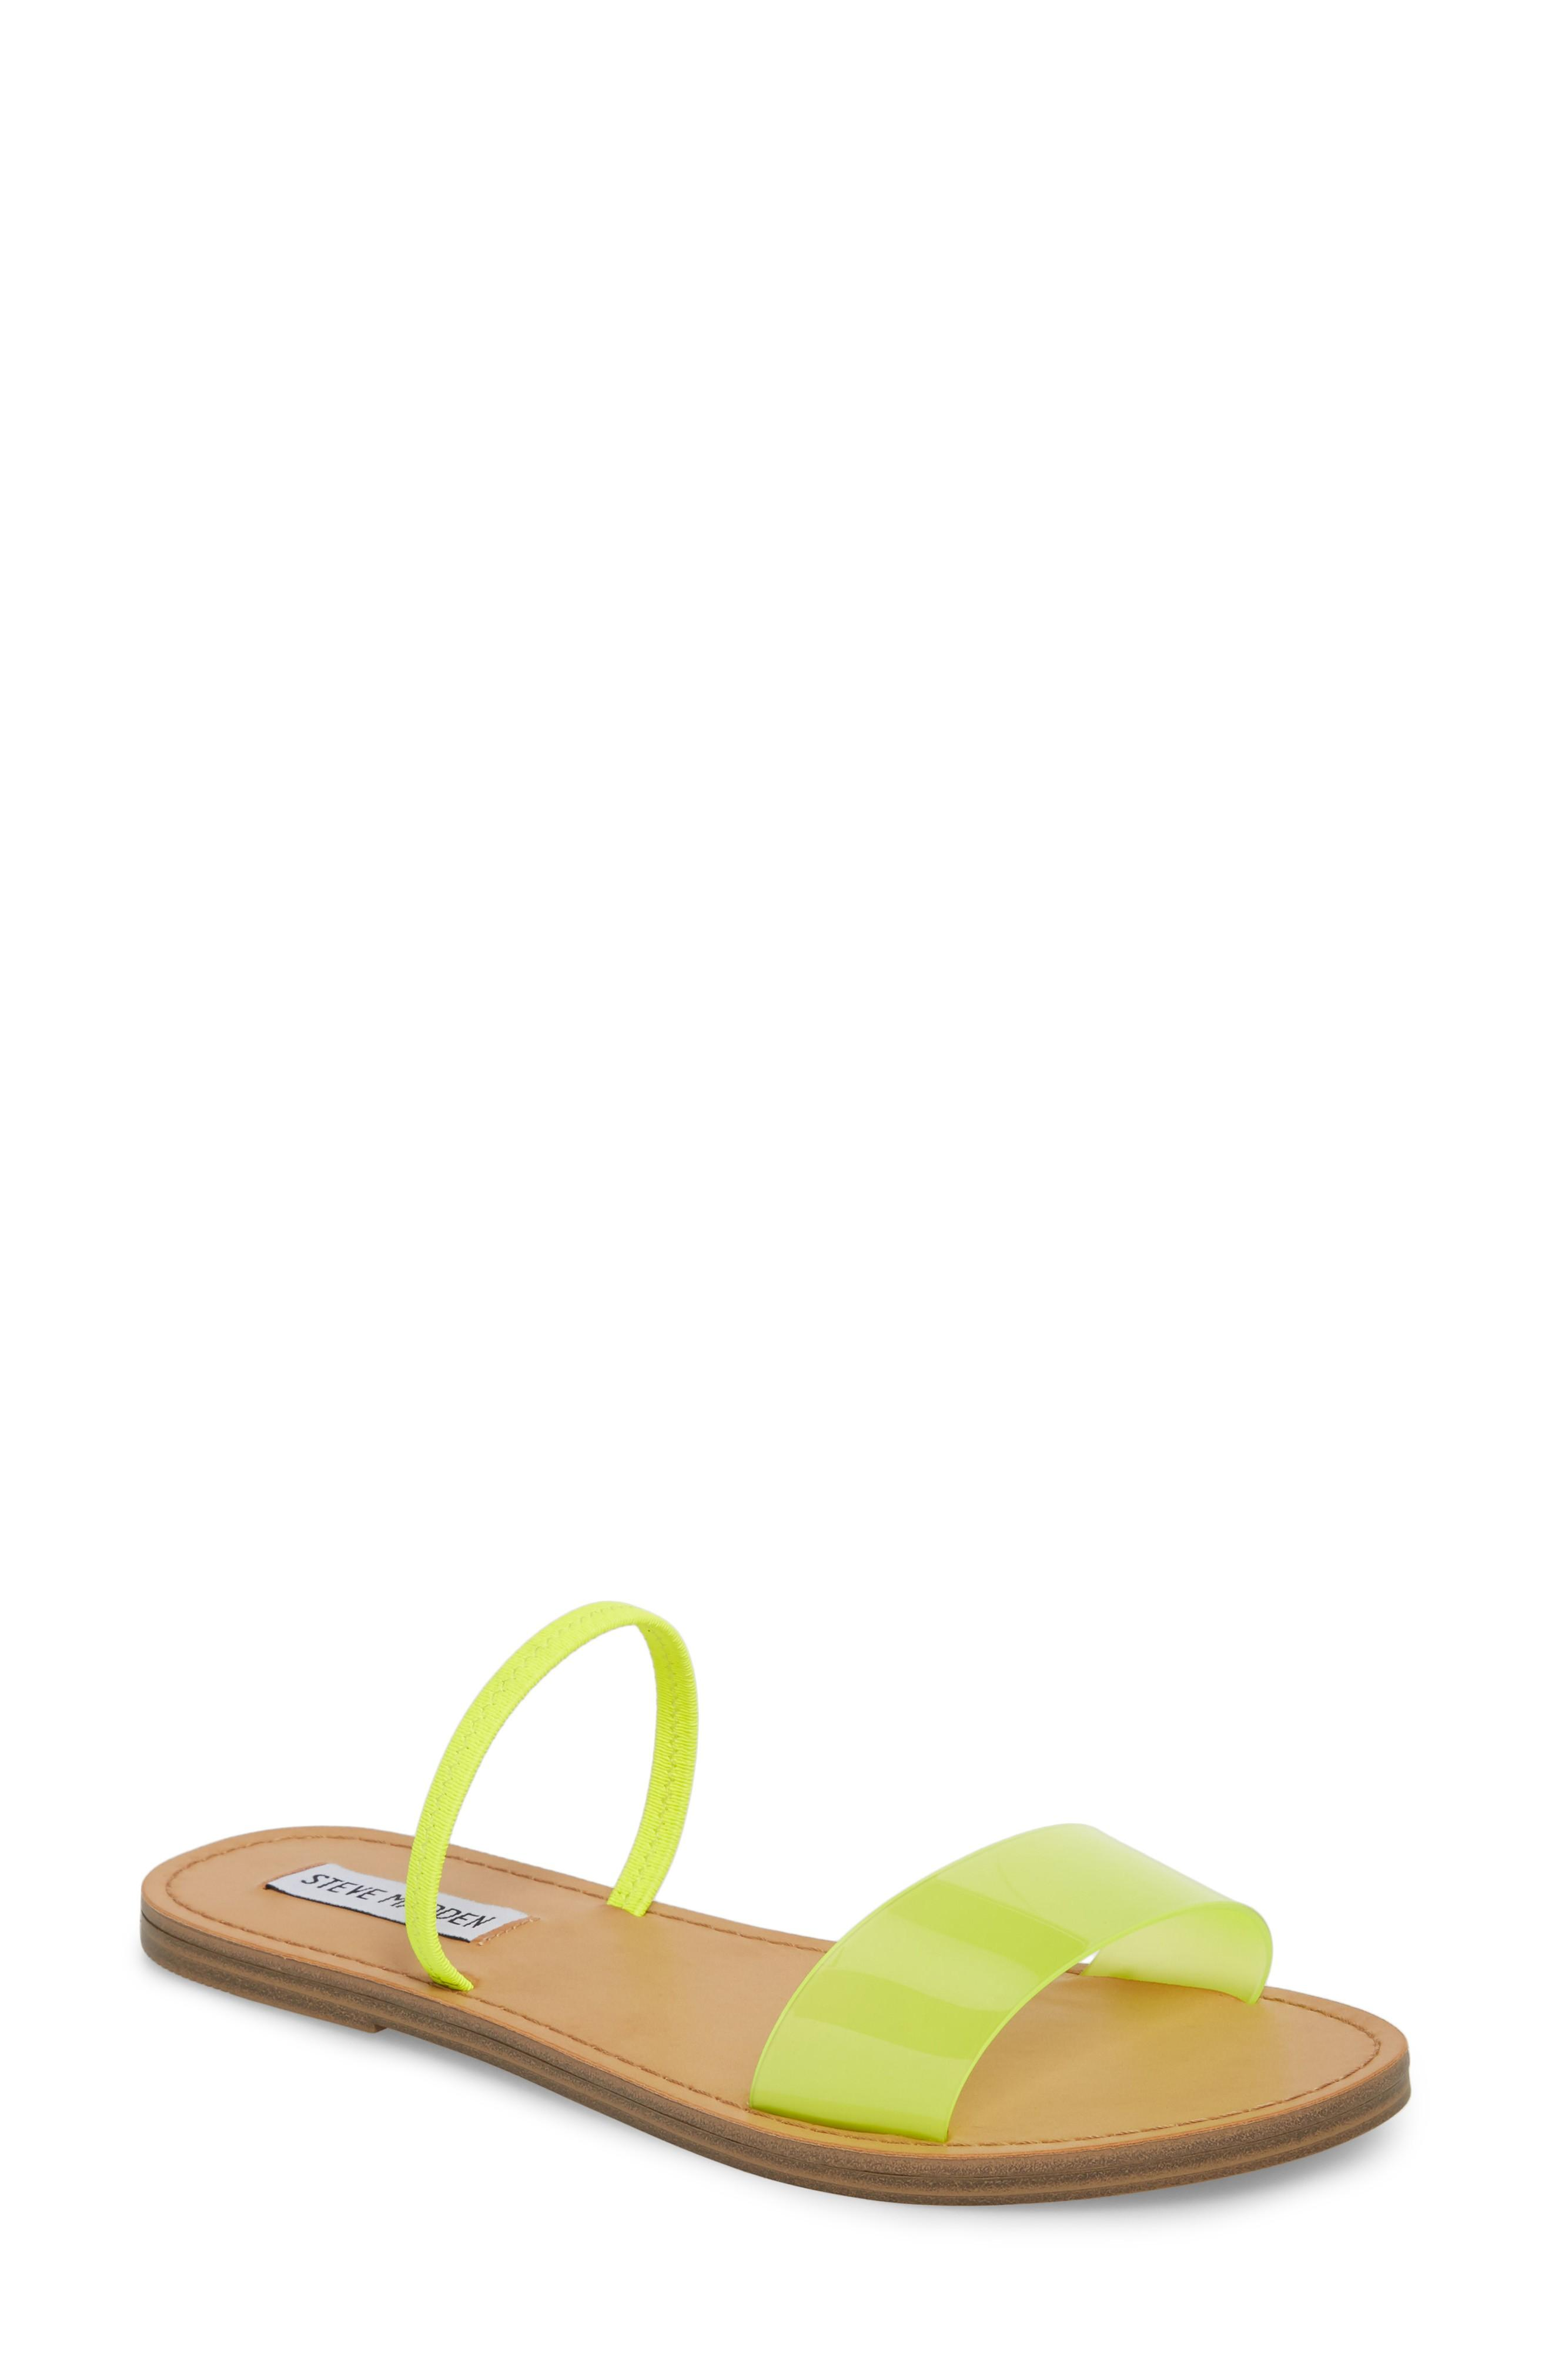 aab53207d8a Steve Madden Dasha Strappy Slide Sandal In Yellow